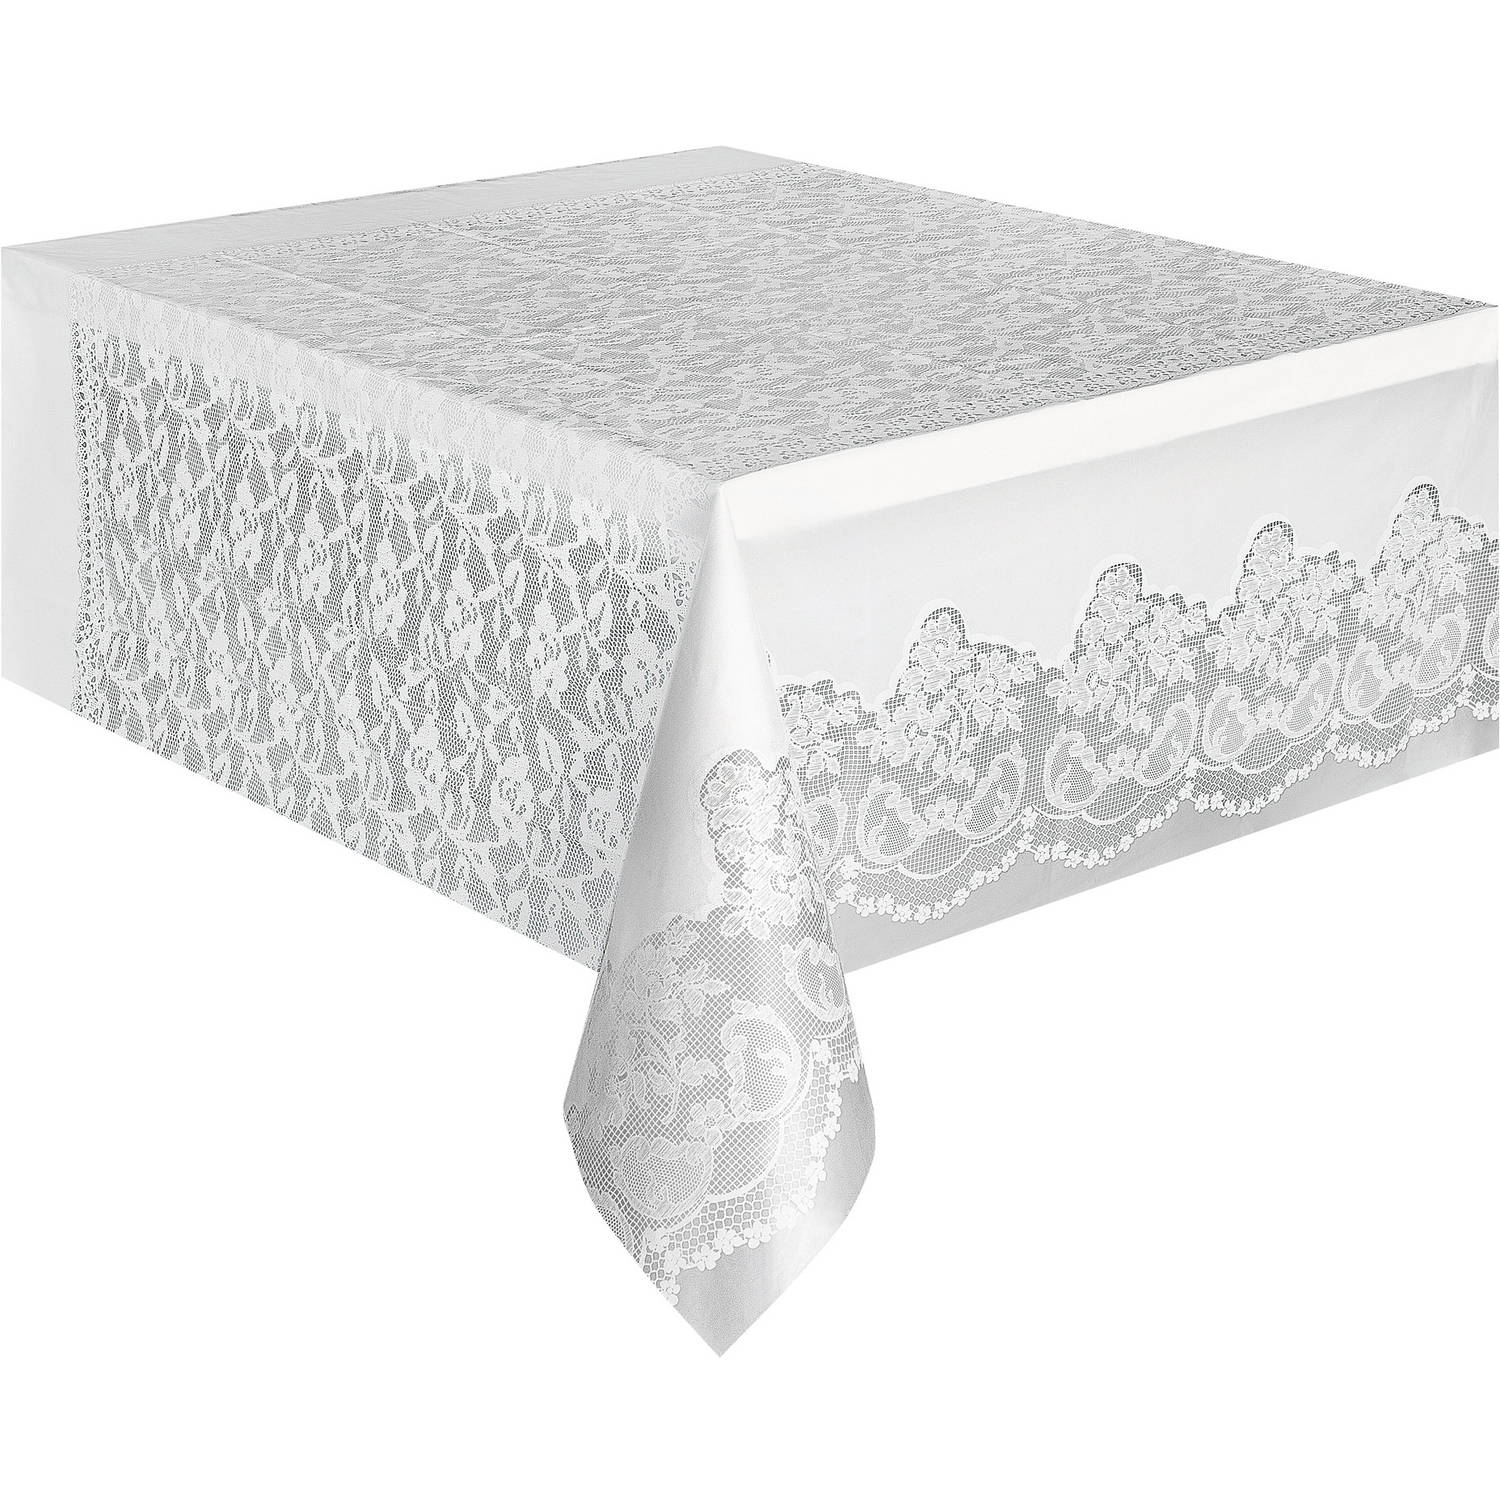 Ordinaire White Lace Print Plastic Party Tablecloth, 108 X 54in